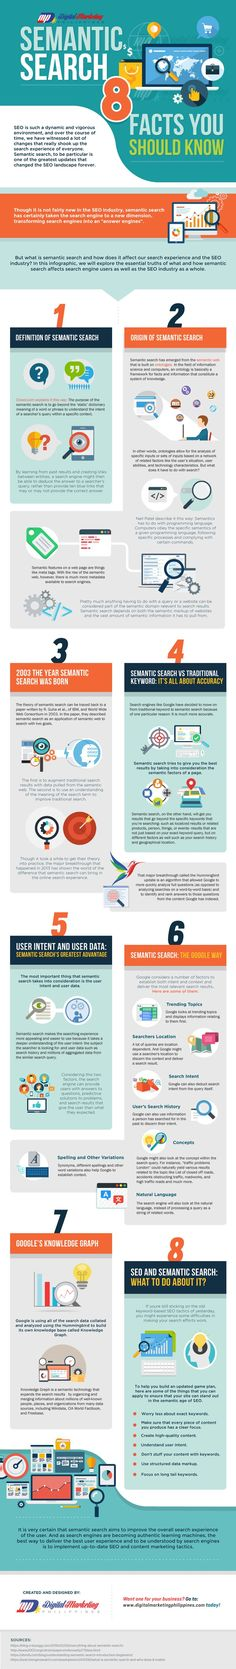 Semantic Search & #SEO - How This Google Update Affects Your Ranking #Infographic #Marketing